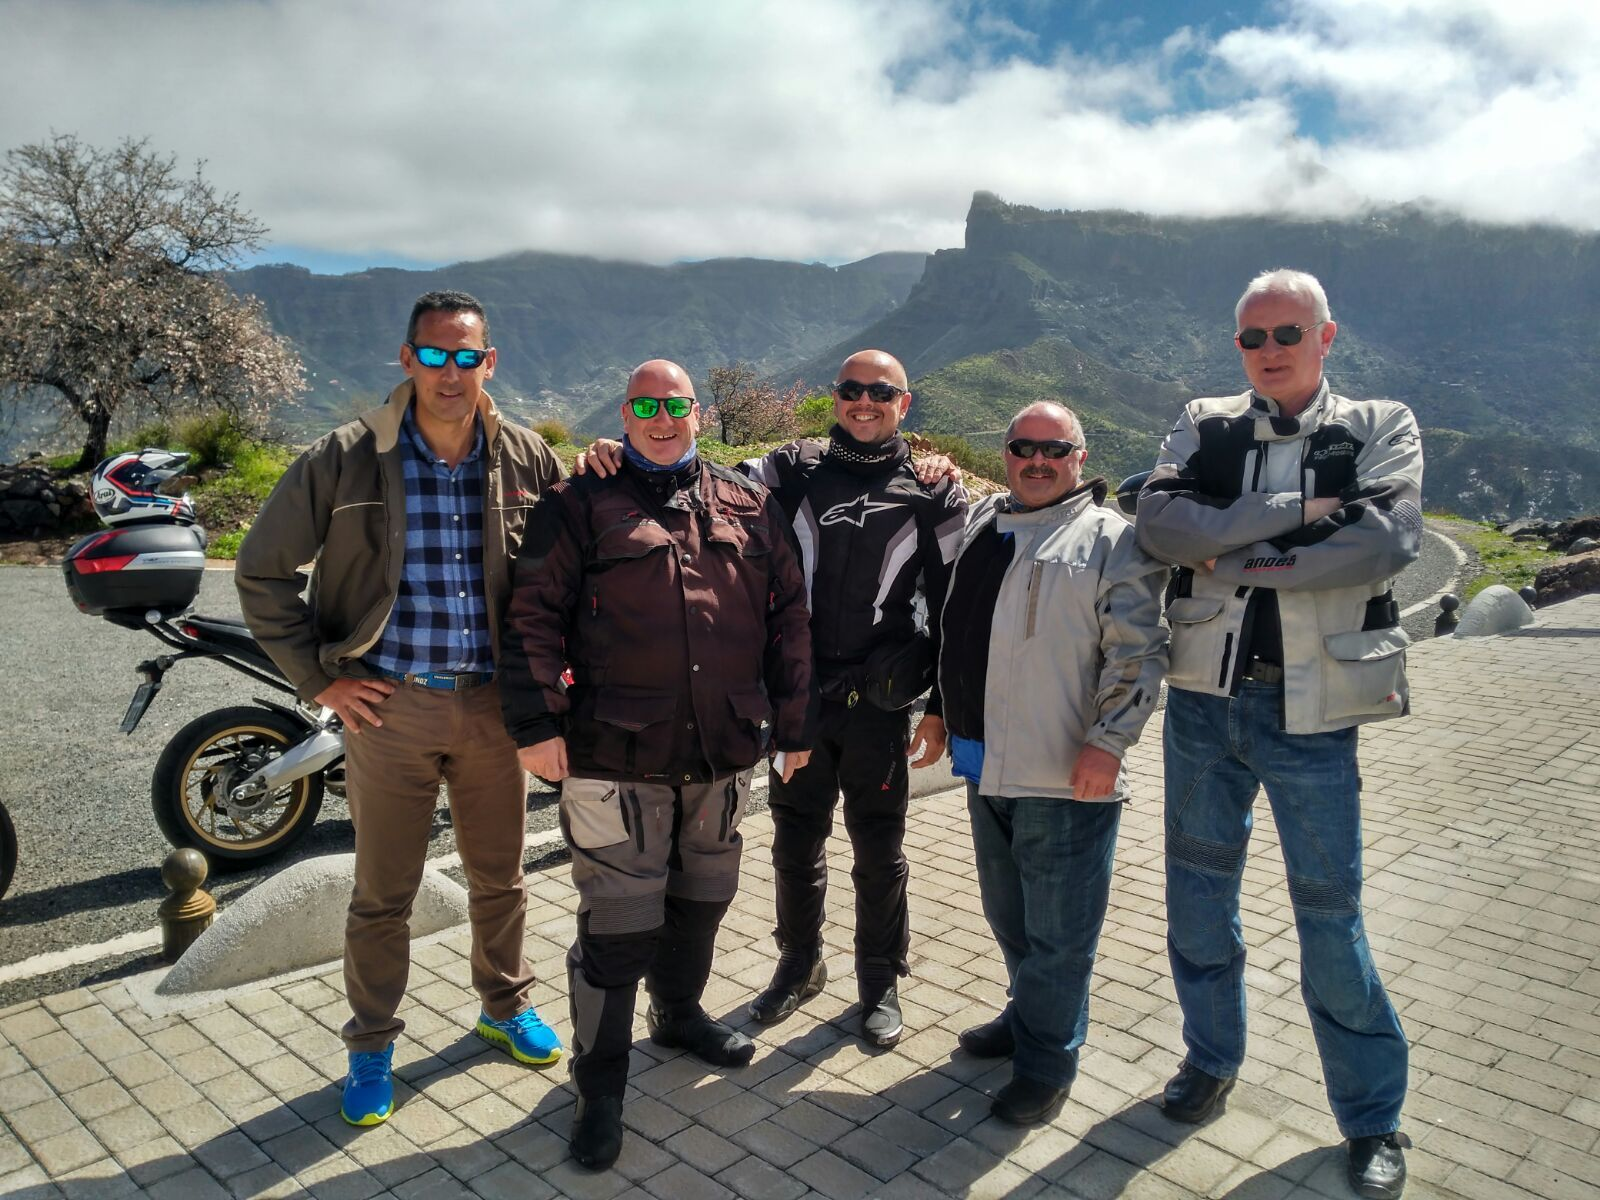 Great group ride out.